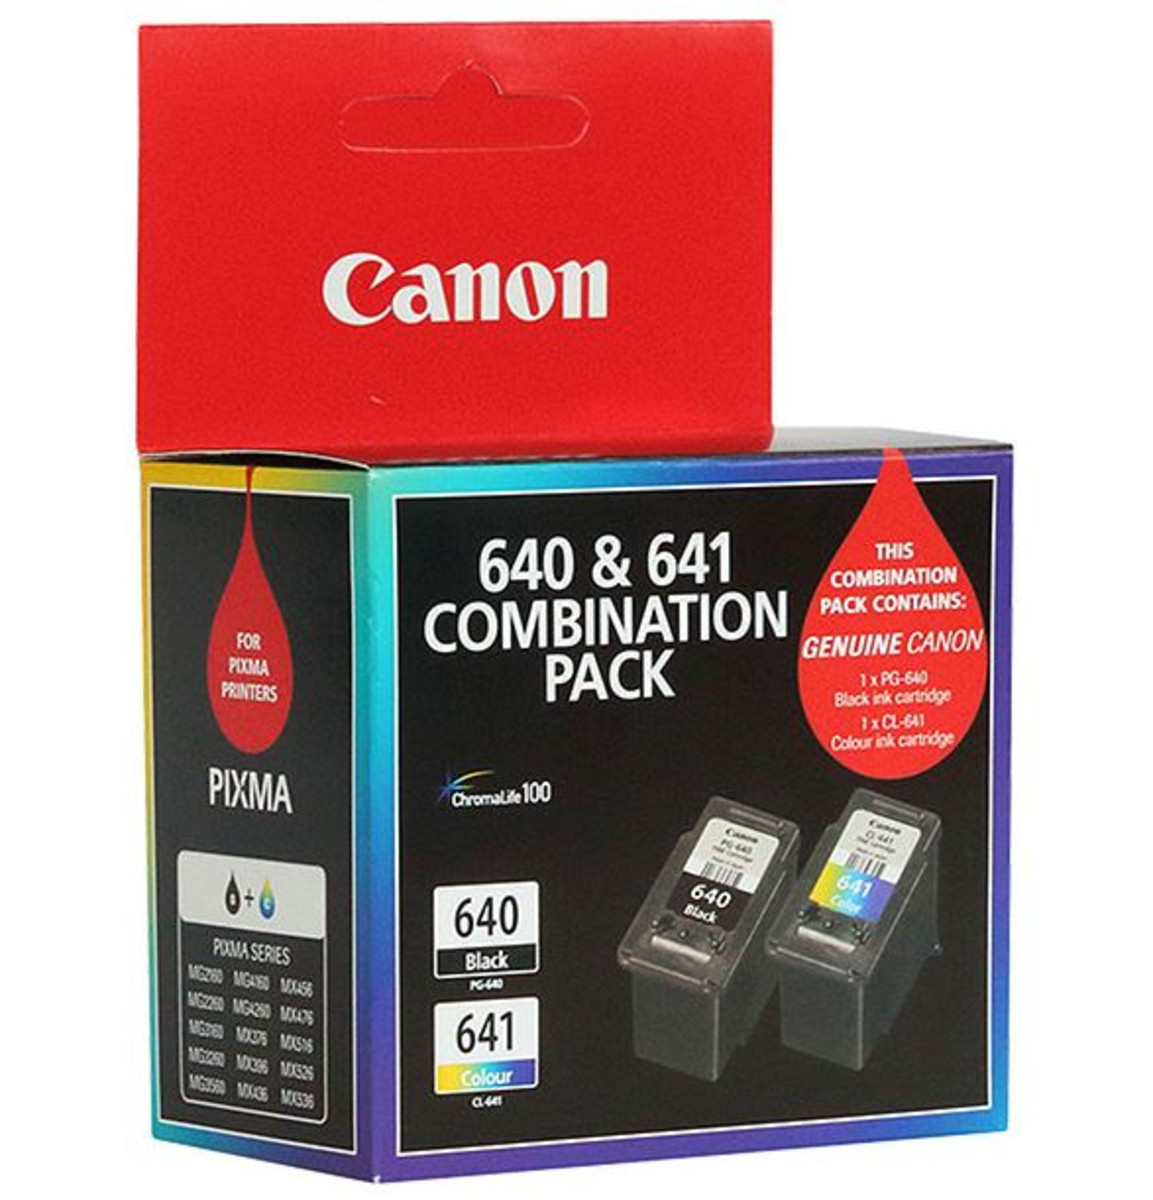 Canon PG640 and CL641 Black And Colour Ink Cartridge Twin Pack